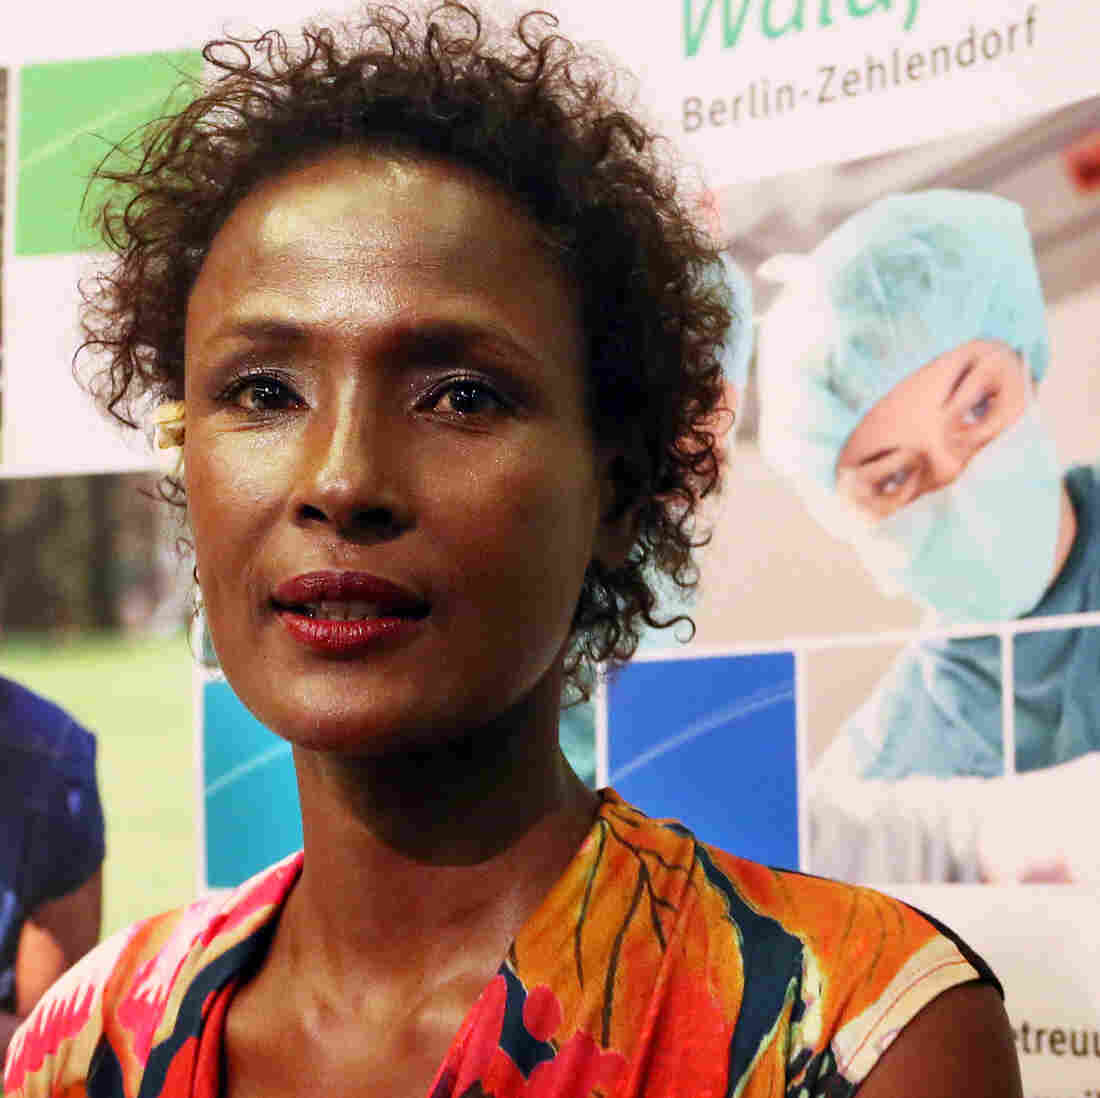 Berlin Clinic Aims To Make Genital Cutting Survivors Feel Whole